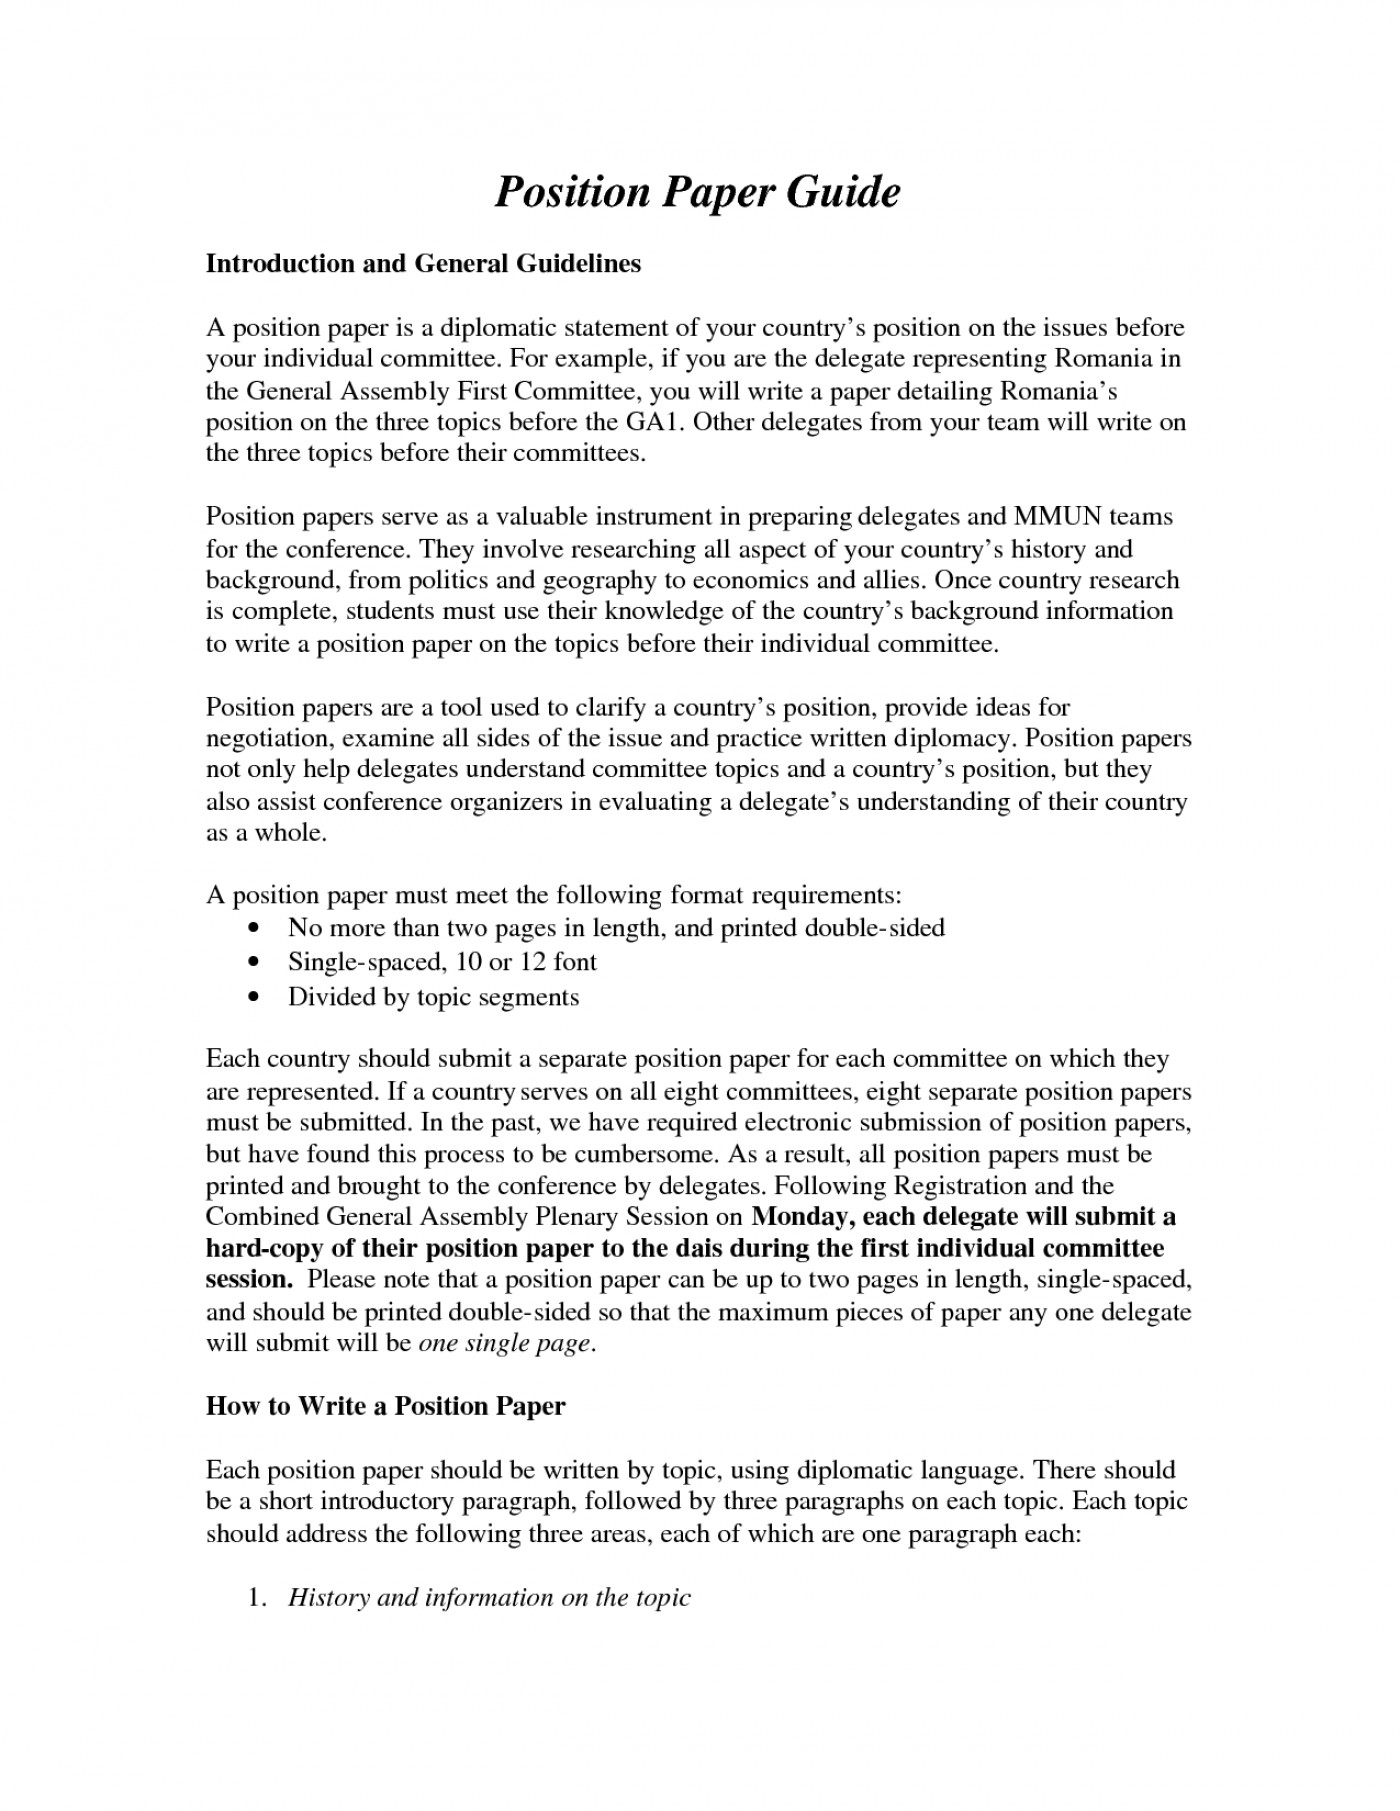 011 Research Papers Topics Paper Proposal Example 343593 Phenomenal For High School Students About Elementary Education Hot In Computer Science 1400